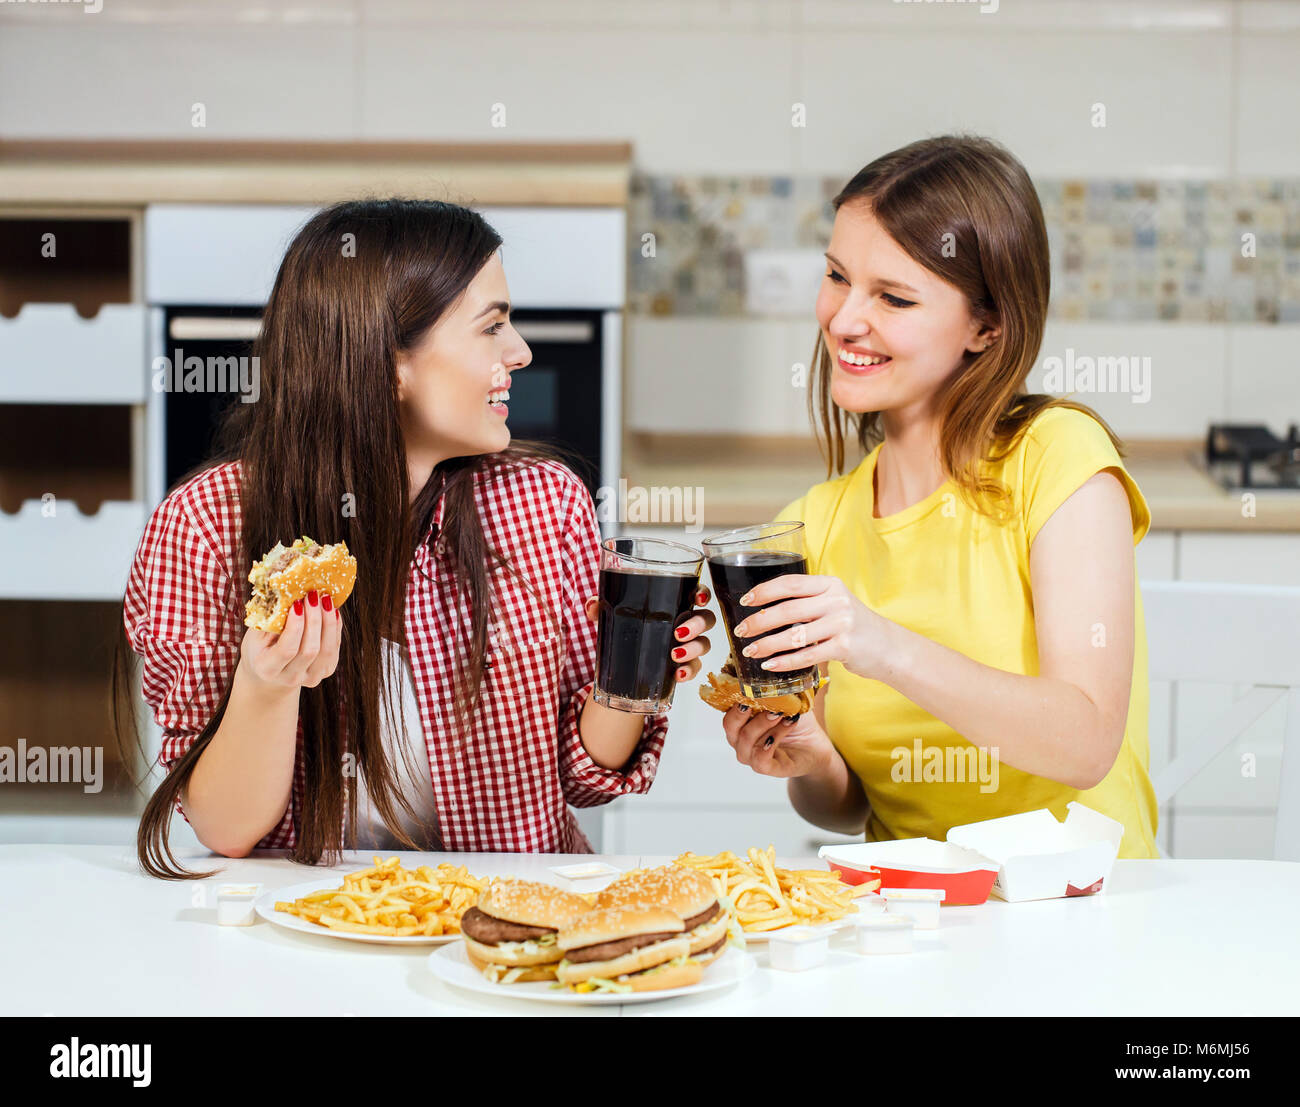 Friends Eat Fast Food - Stock Image